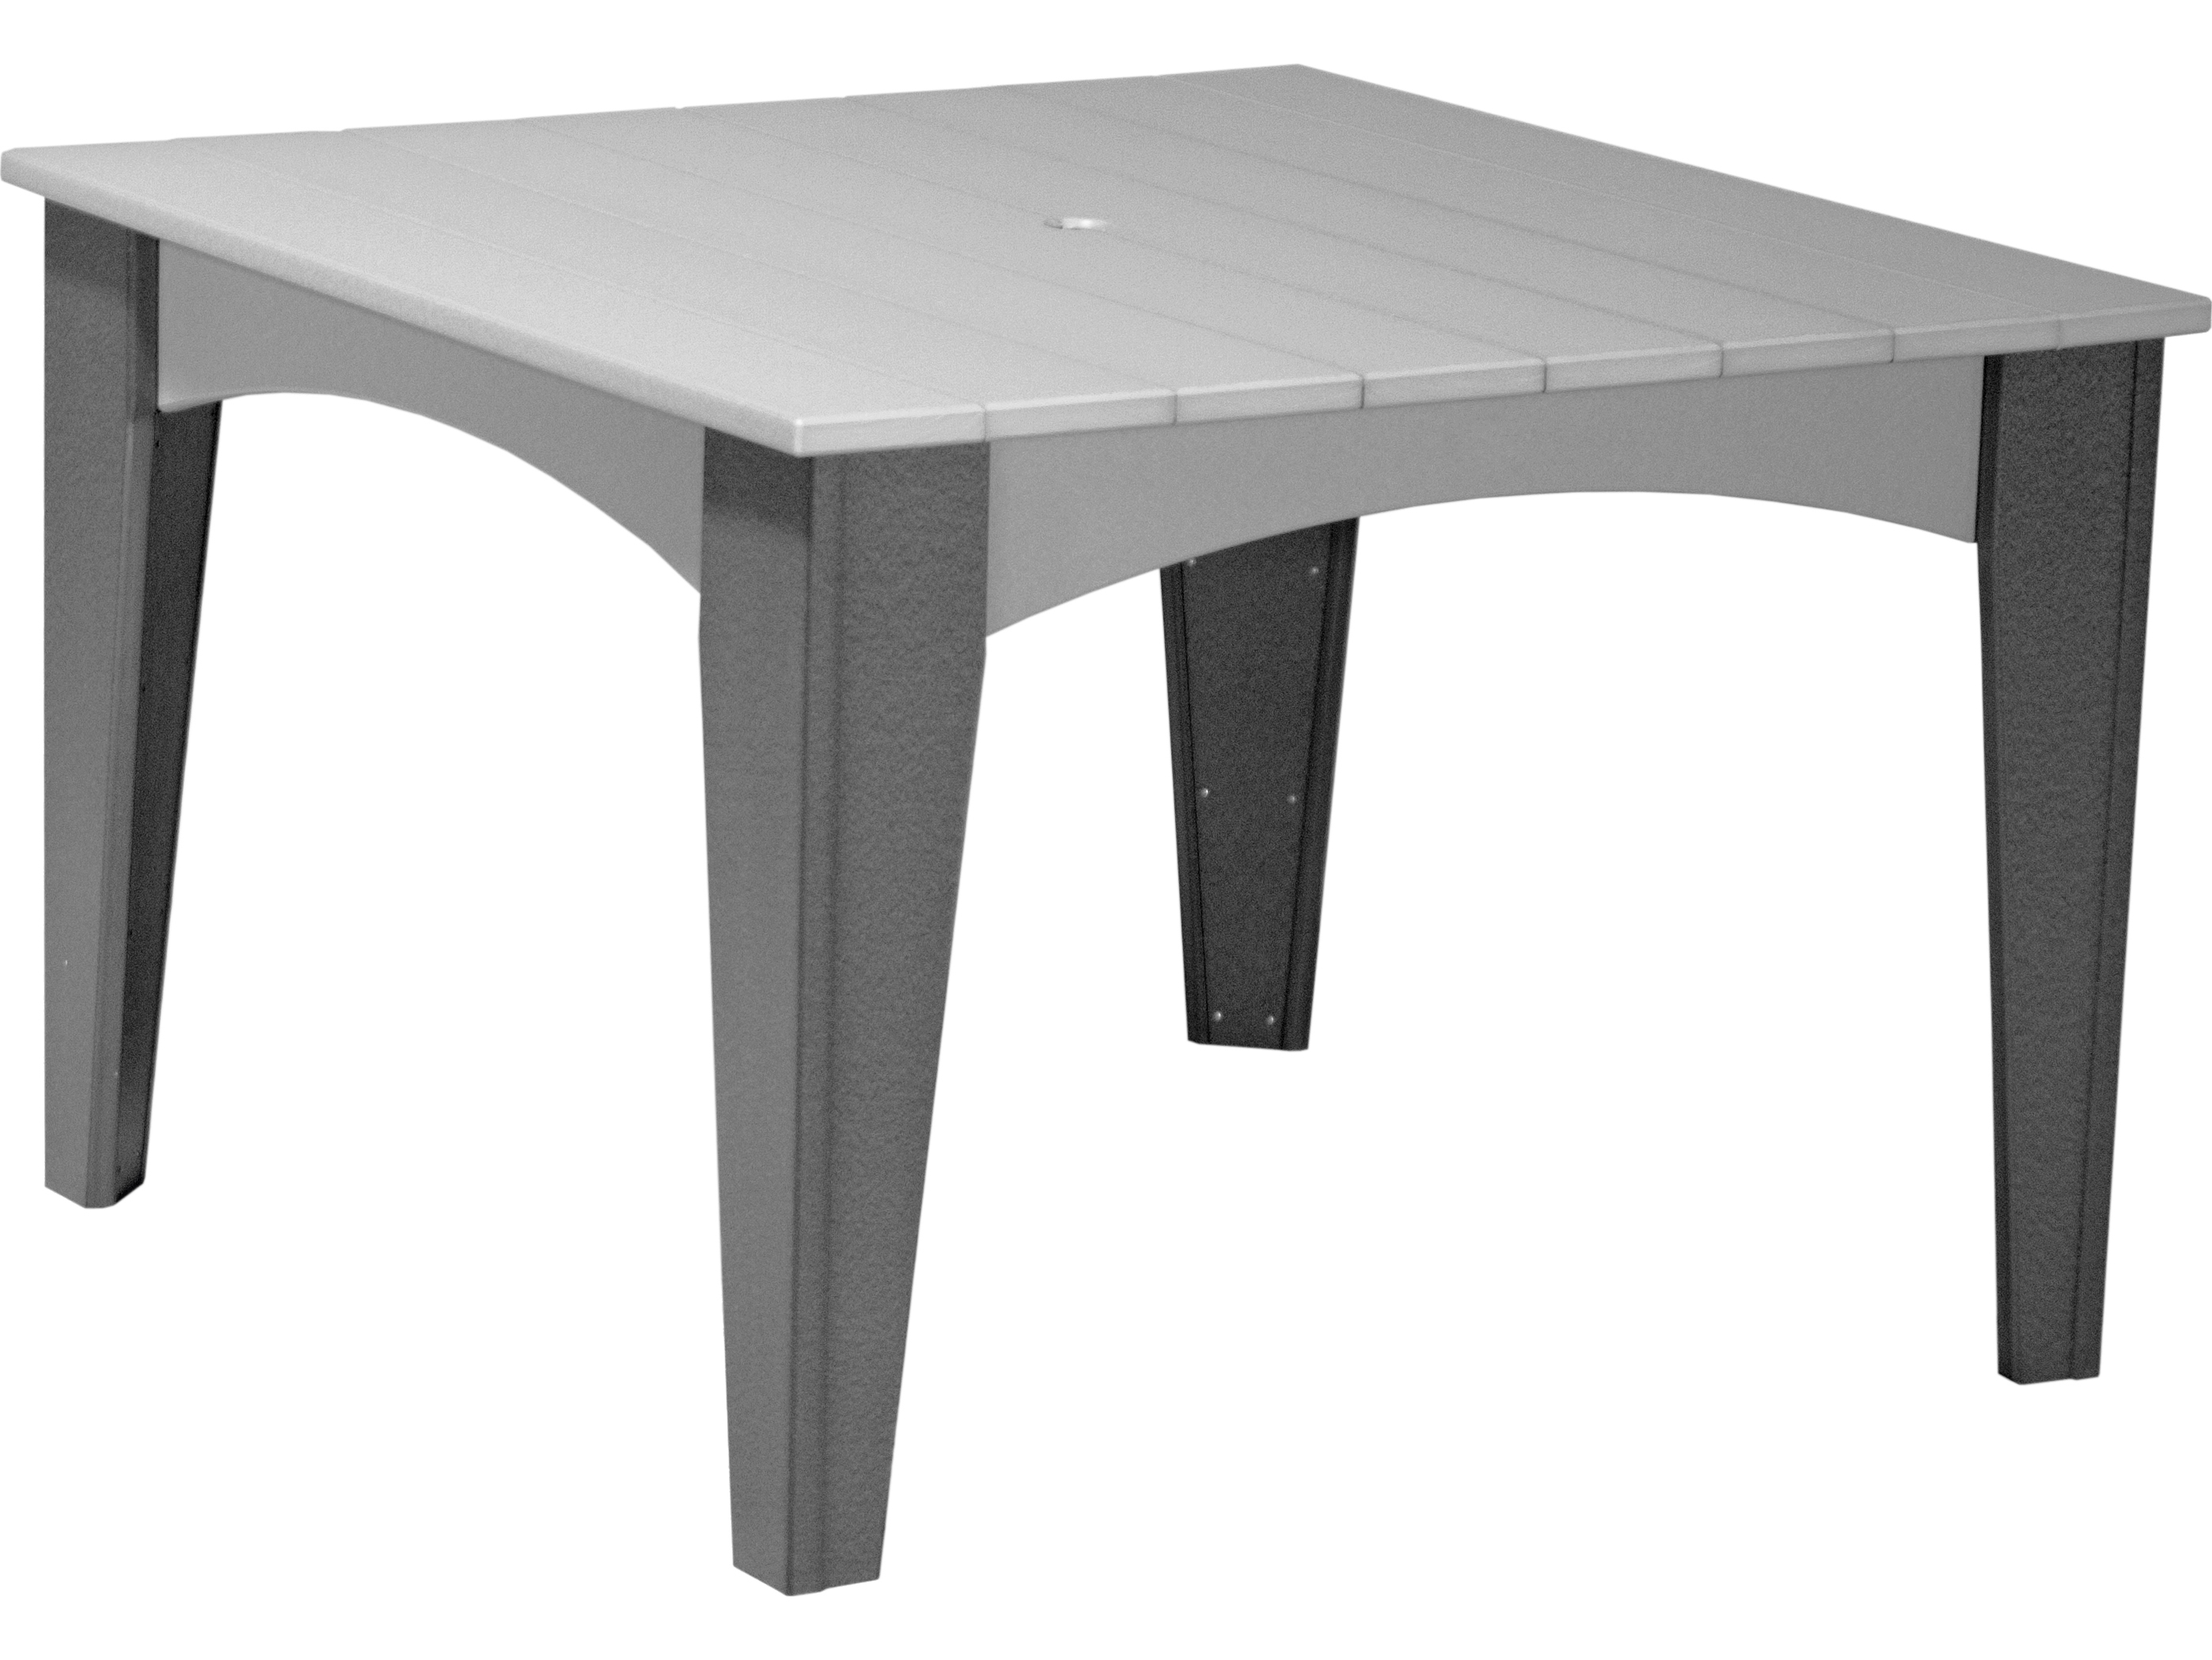 tag archived fireplace ideas tile gorgeous kwila table bar bunnings for and side mimosa timber settings tables concrete kmart umbrella set rent round plastic outdoor cover dining